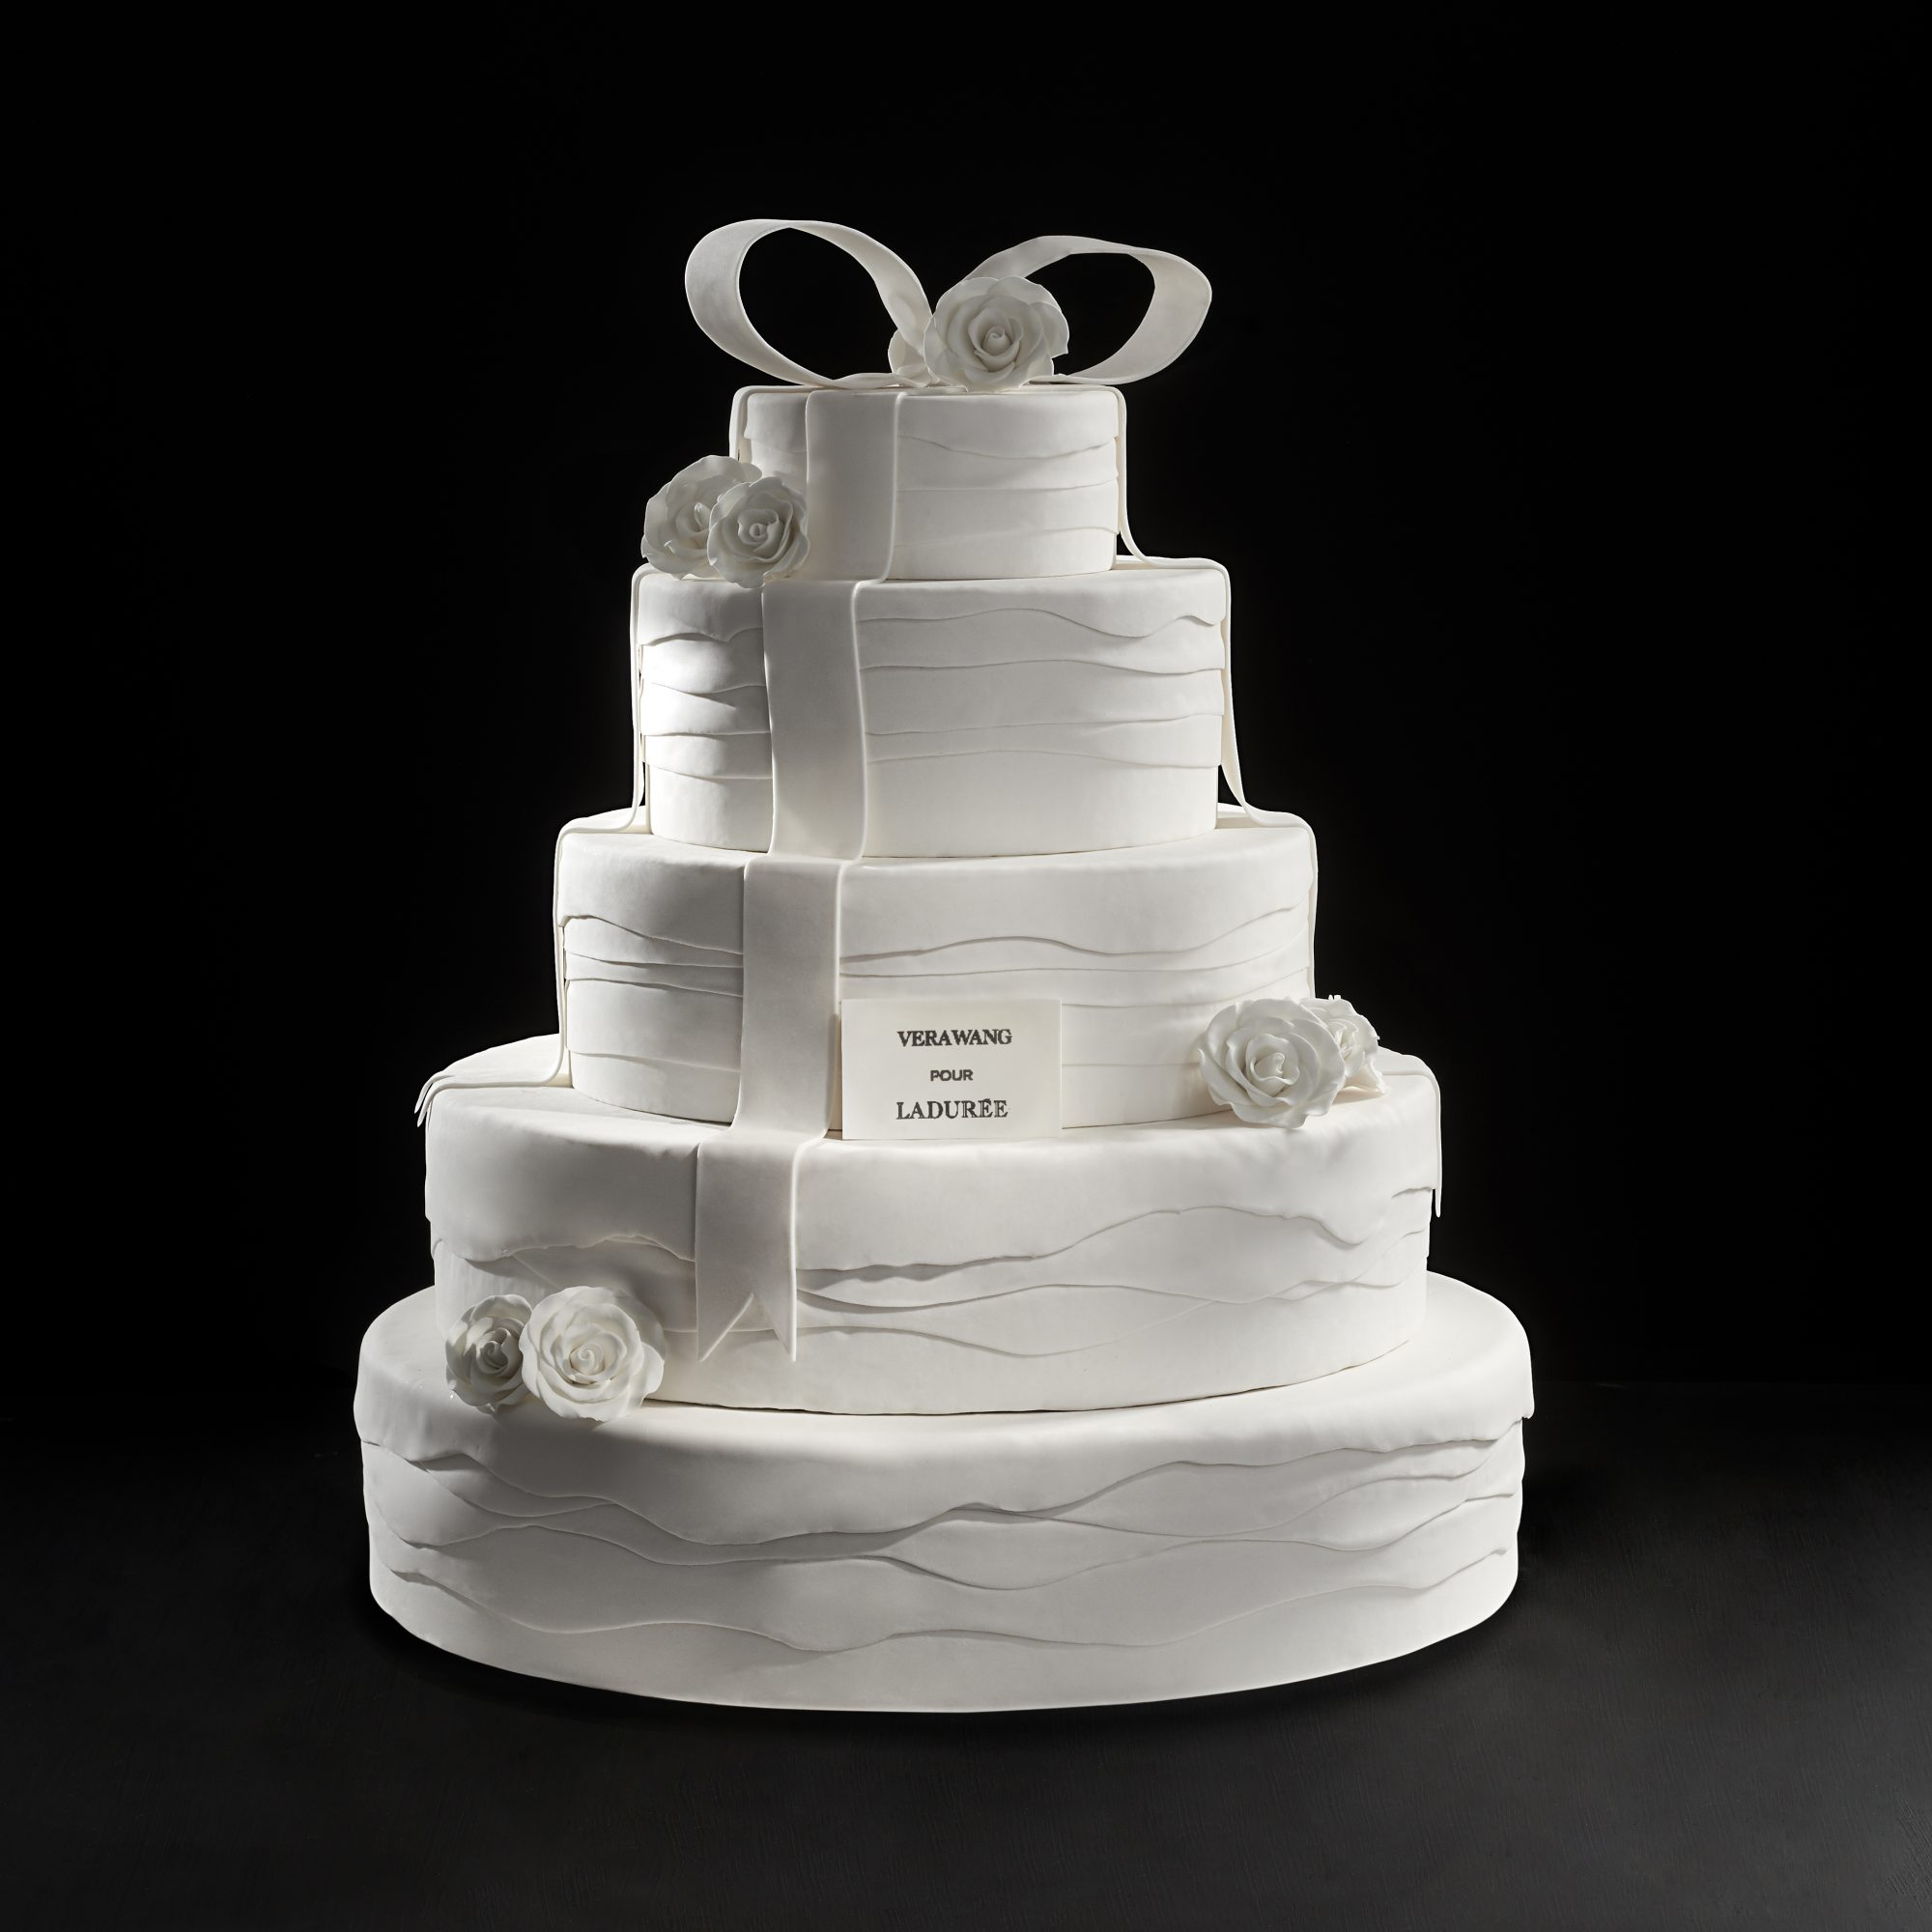 Vera Wang for Laduree Wedding Cake